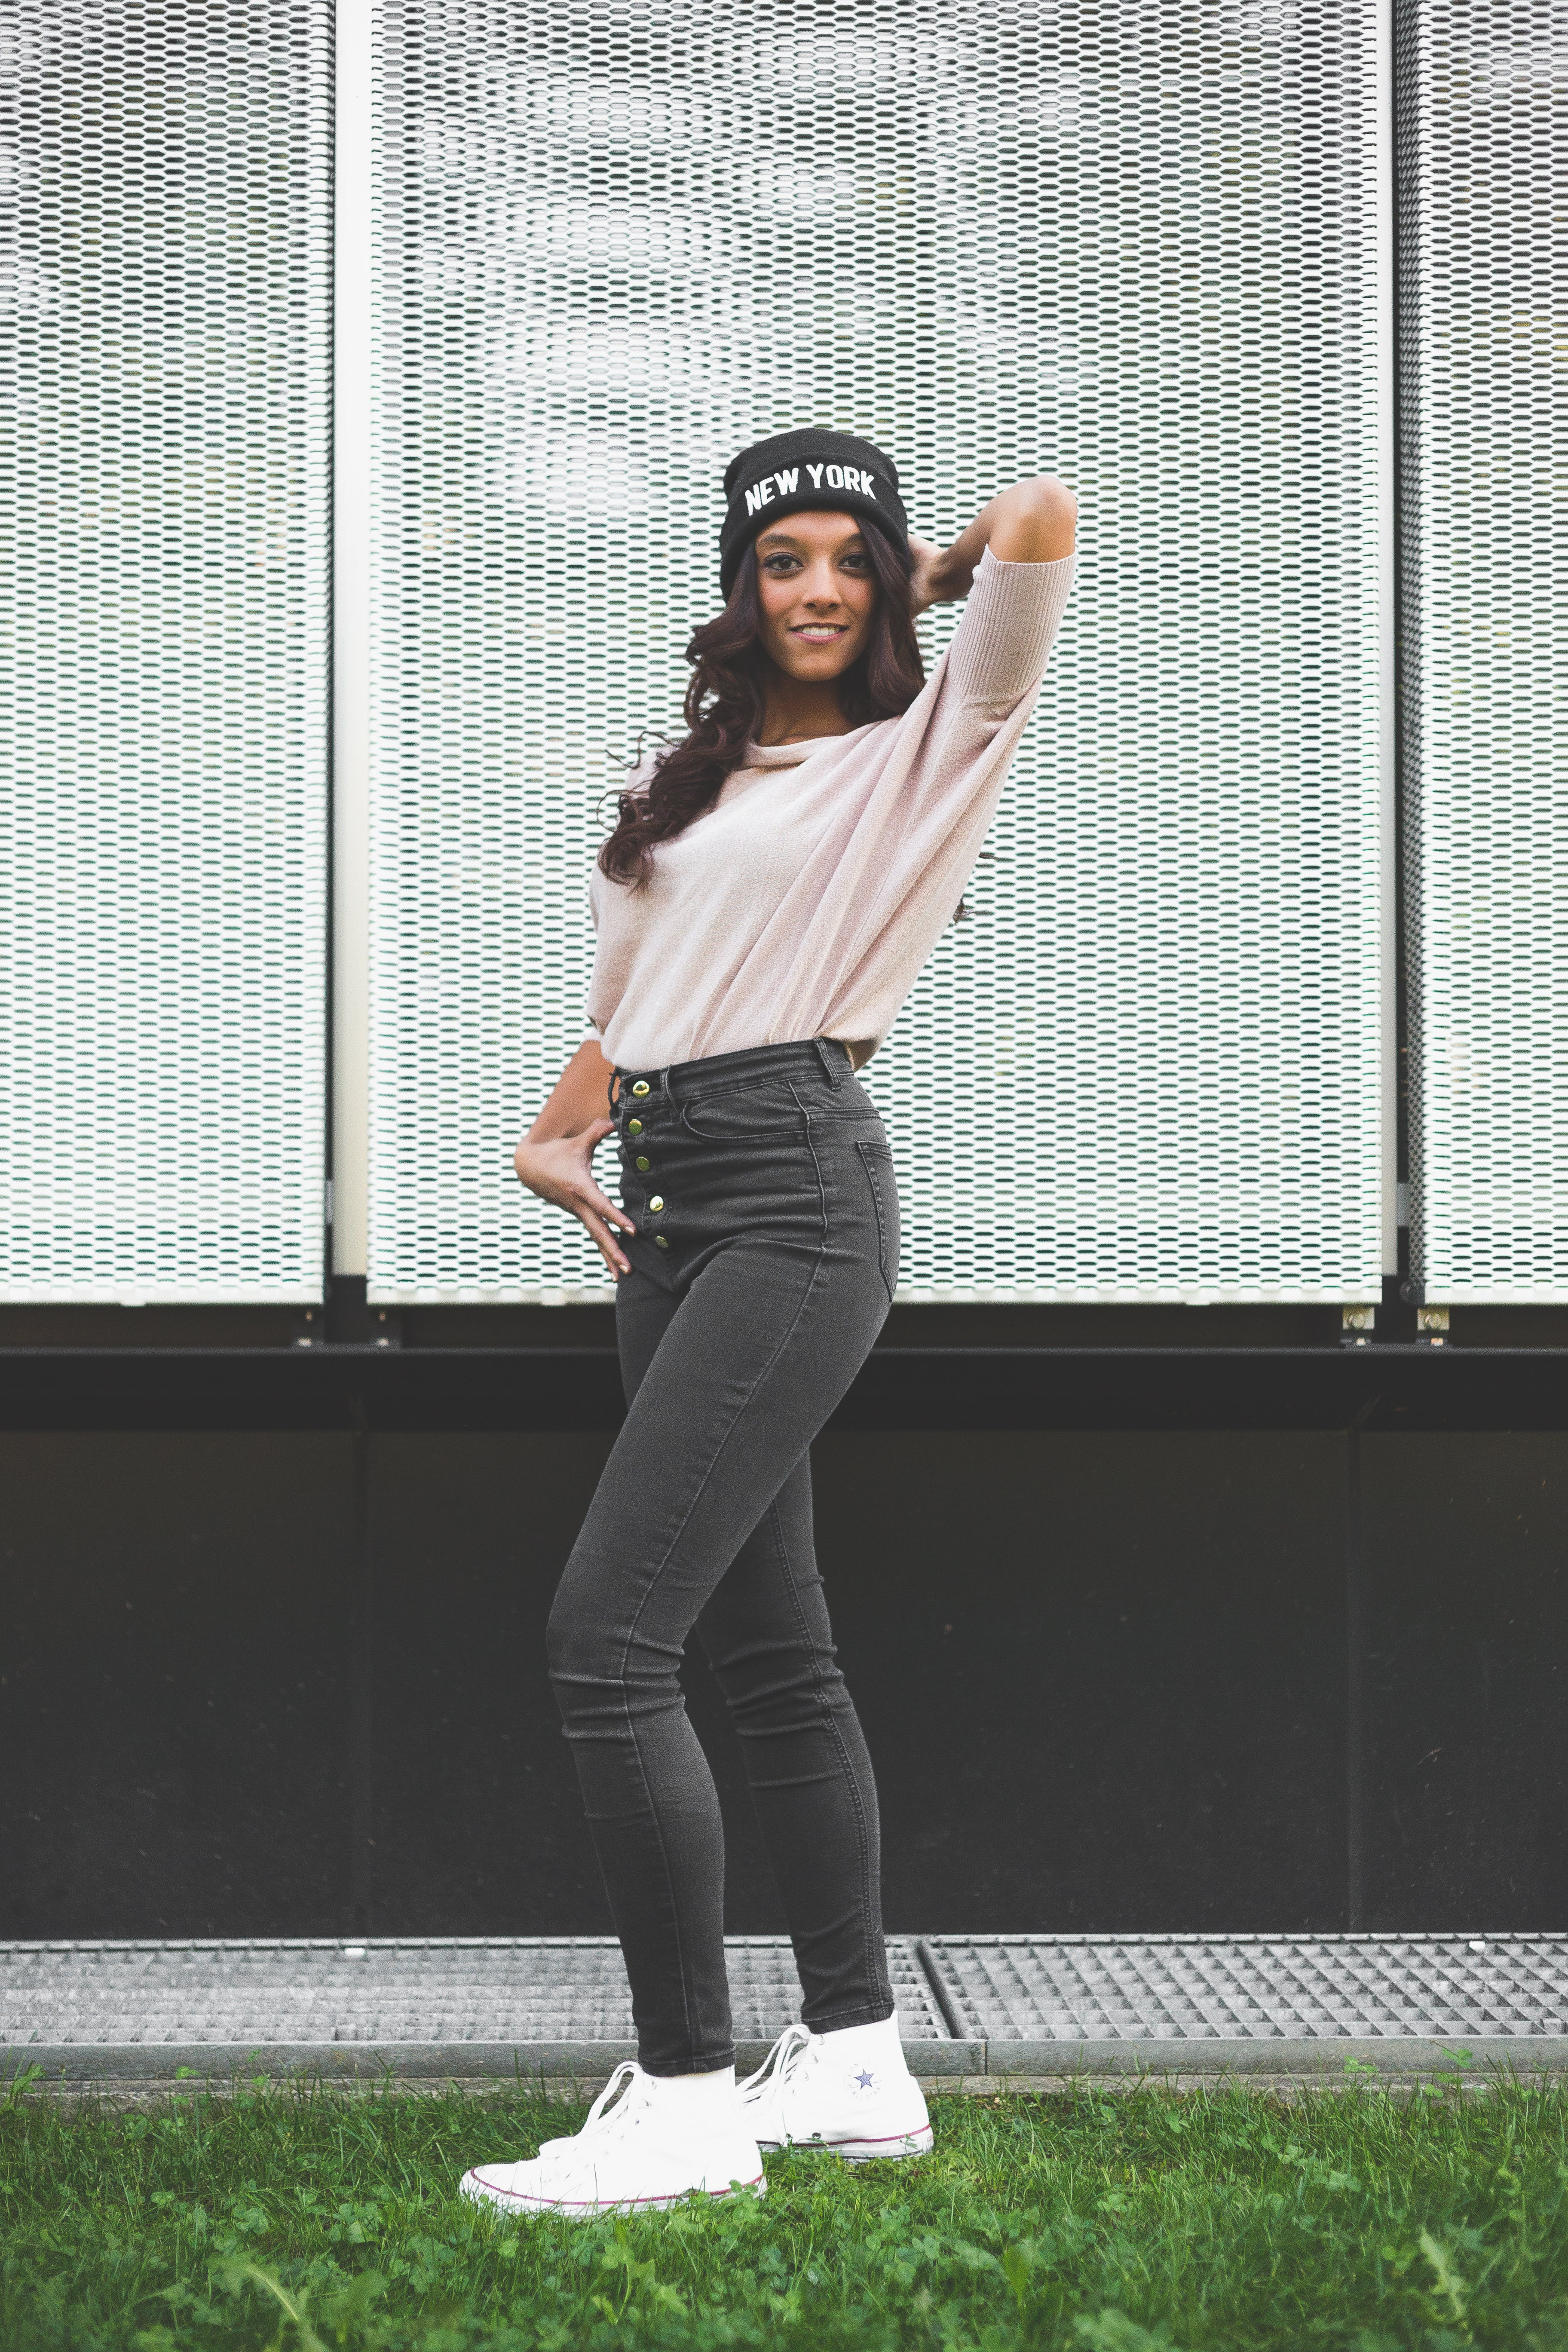 Photo of a Woman Wearing Beanie